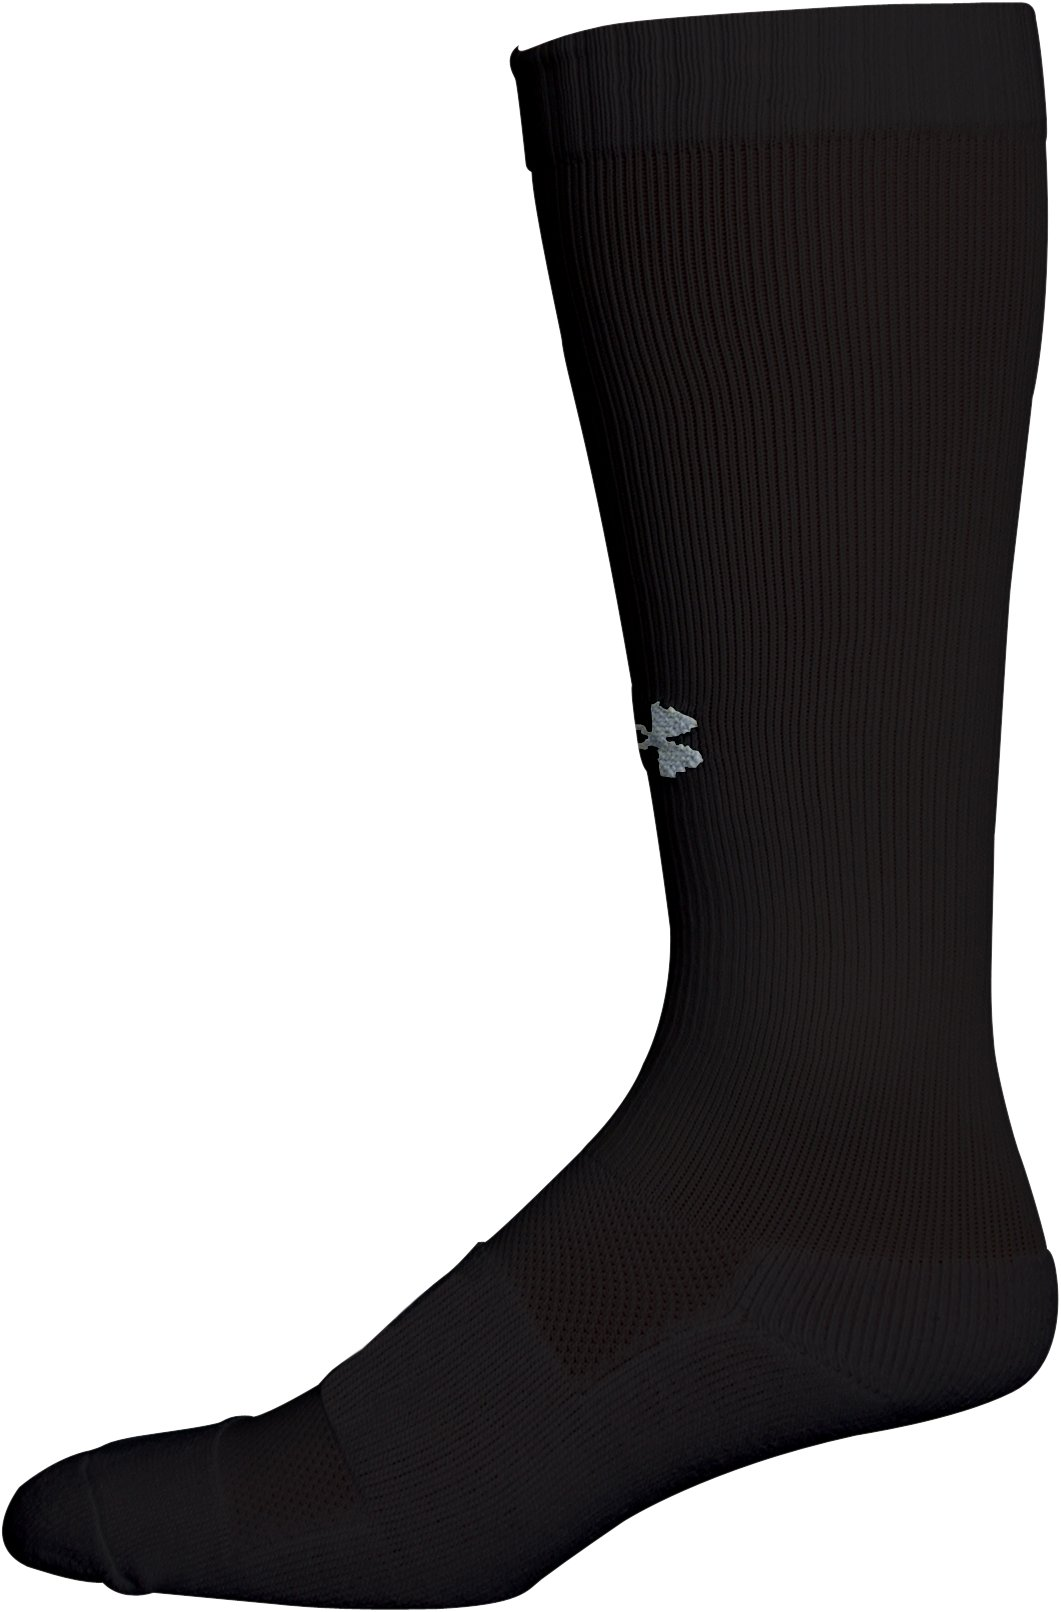 Youth AllSport Socks, Black